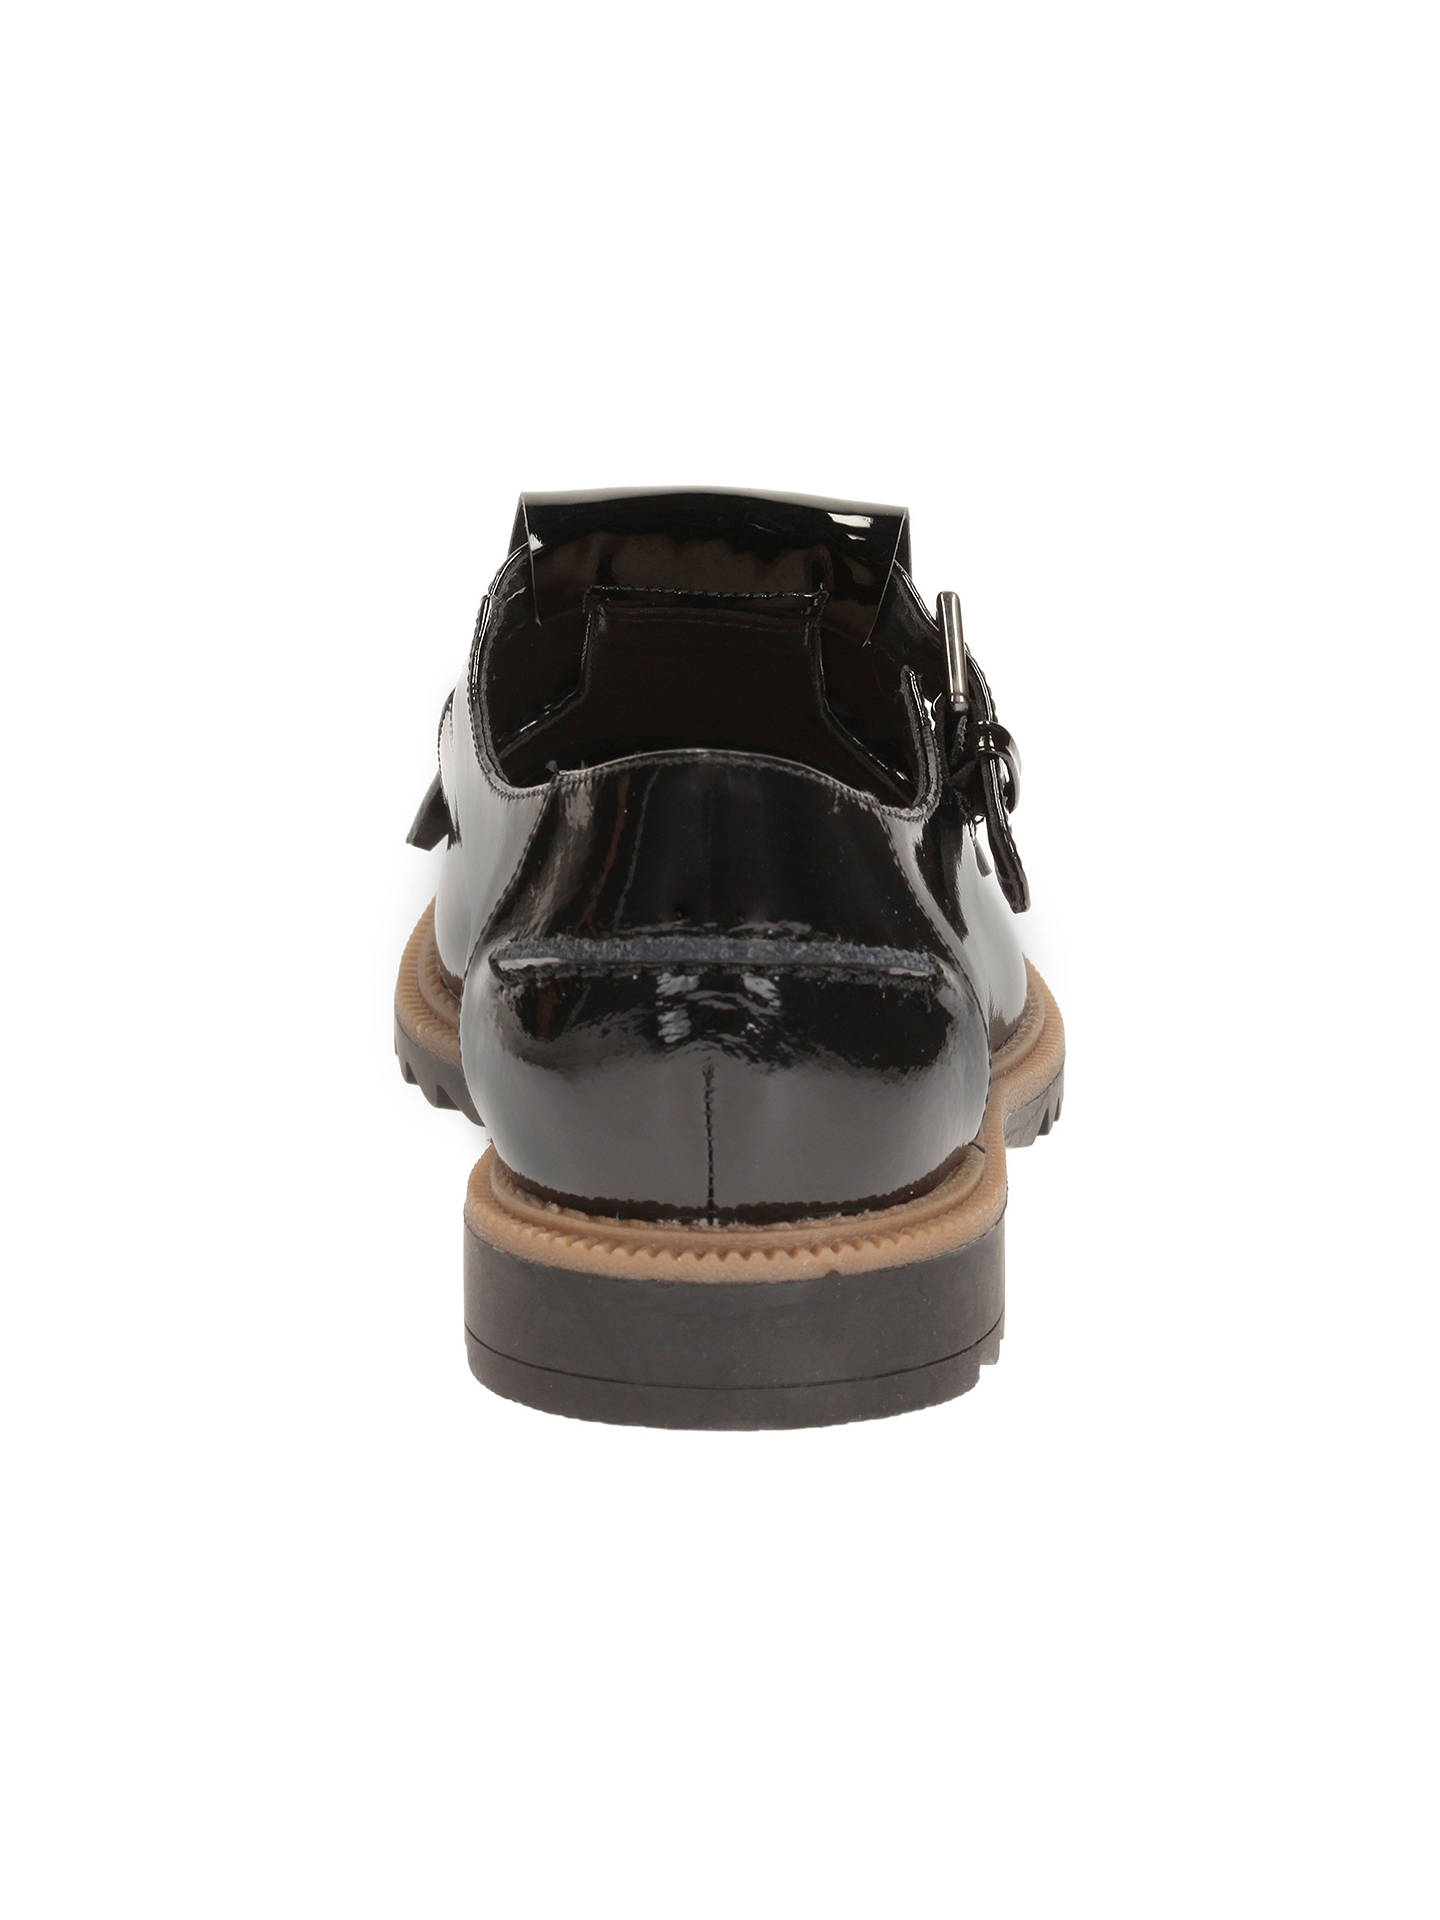 ab54985ad59d3 Buy Clarks Griffin Mia Tassel Loafers, Black Patent Leather, 3 Online at  johnlewis.